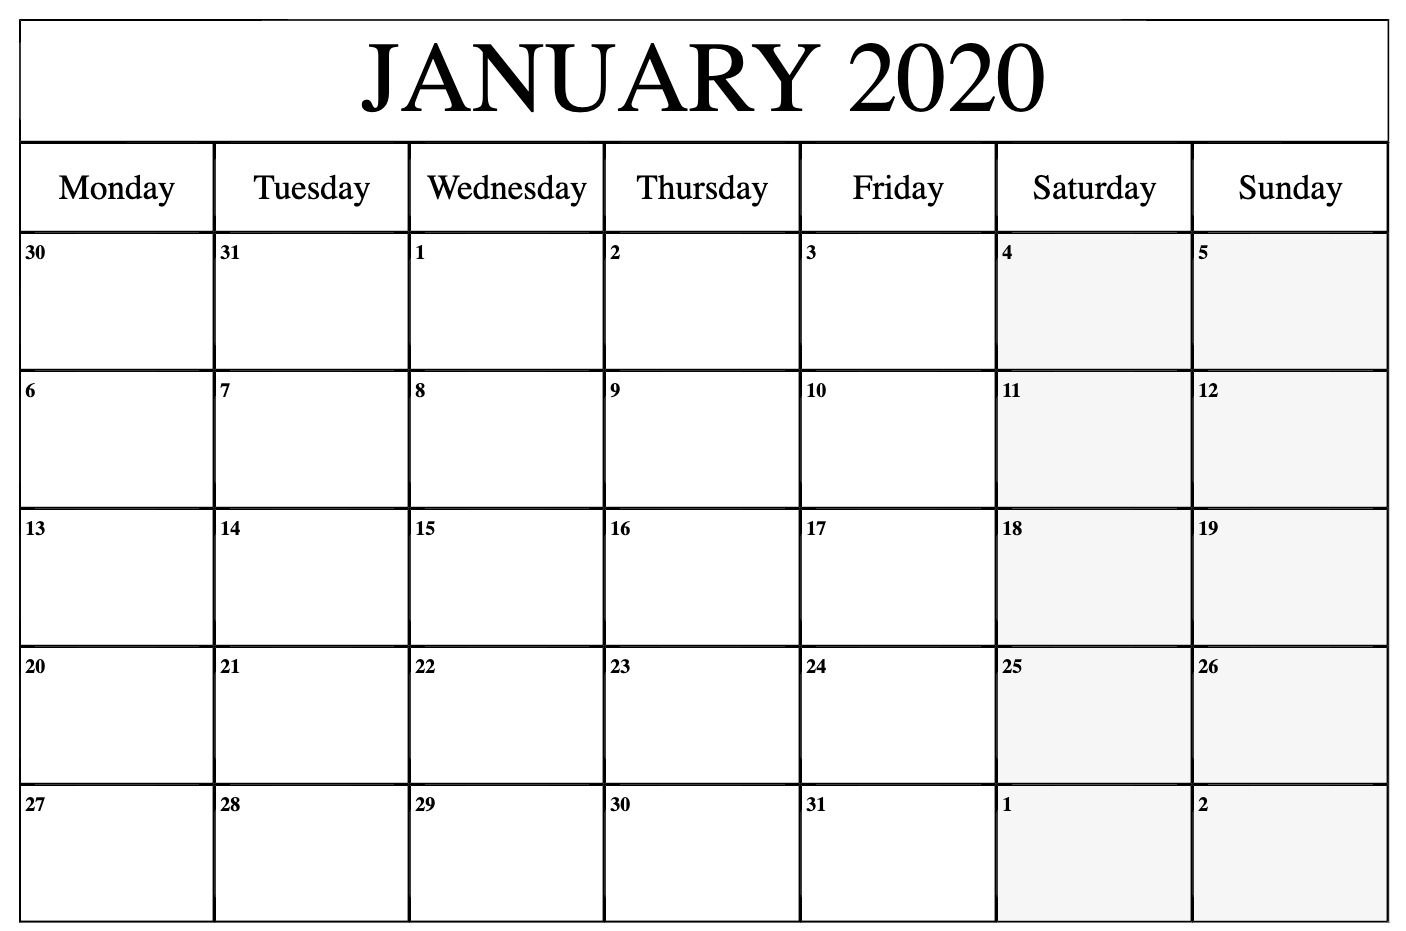 January 2020 Calendar Printable Monday | Printable Calendar with 2020 Calendar Template Monday Sunday